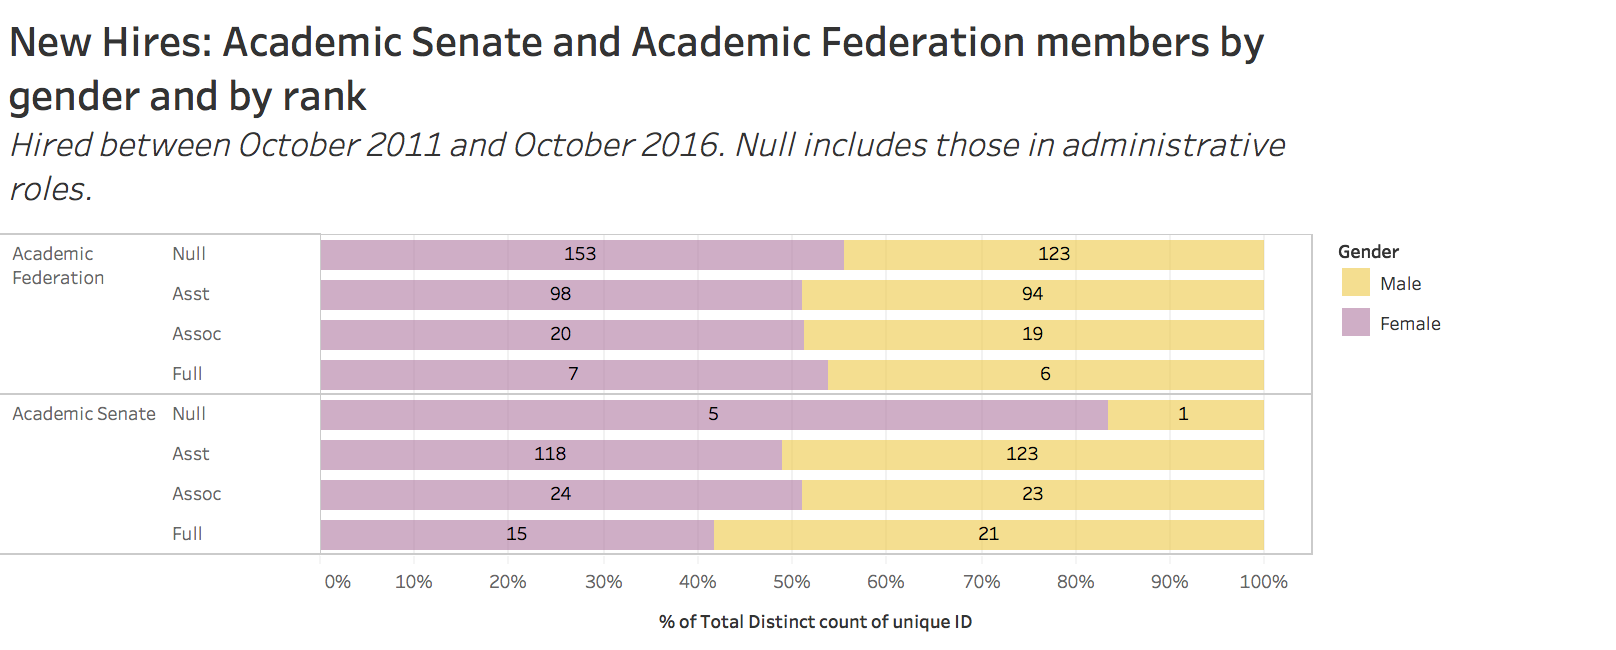 New hires: academic senate and academic federation members by gender and rank